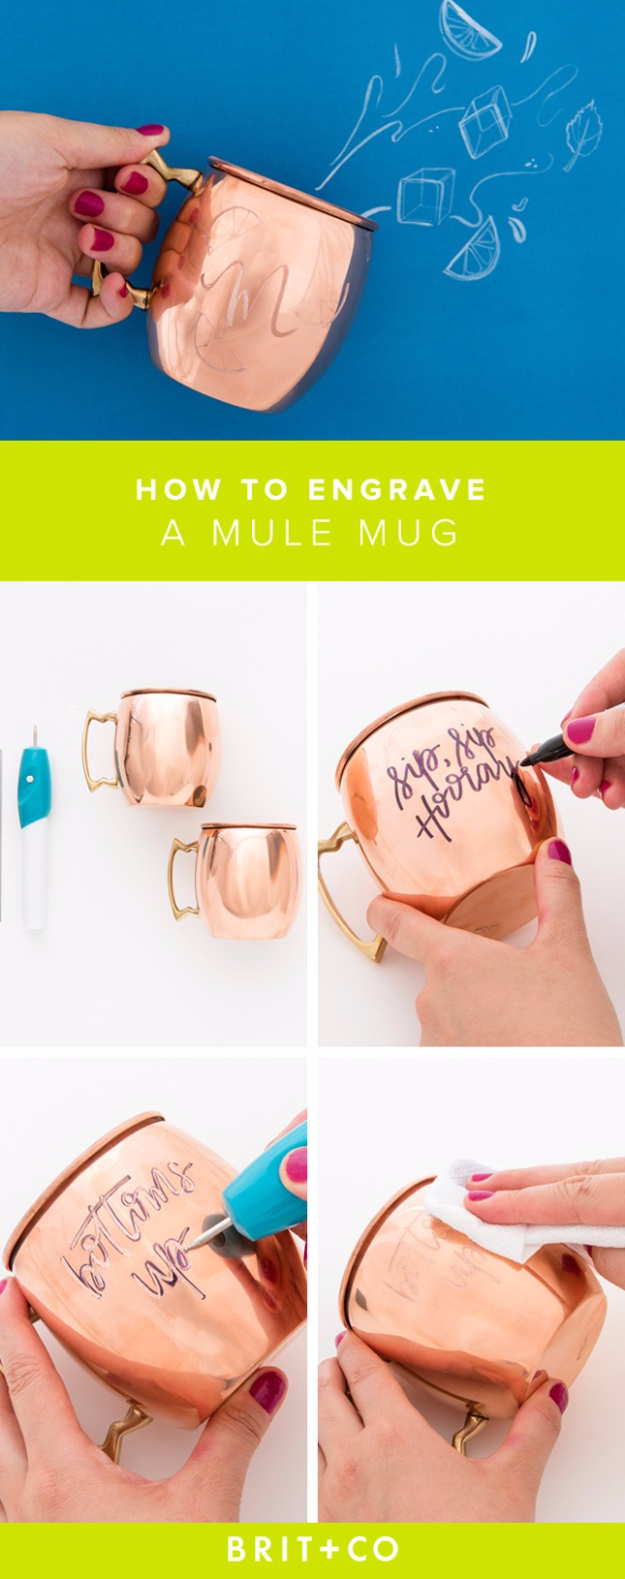 DIY Gift for the Office - DIY Engraved Copper Mug - DIY Gift Ideas for Your Boss and Coworkers - Cheap and Quick Presents to Make for Office Parties, Secret Santa Gifts - Cool Mason Jar Ideas, Creative Gift Baskets and Easy Office Christmas Presents